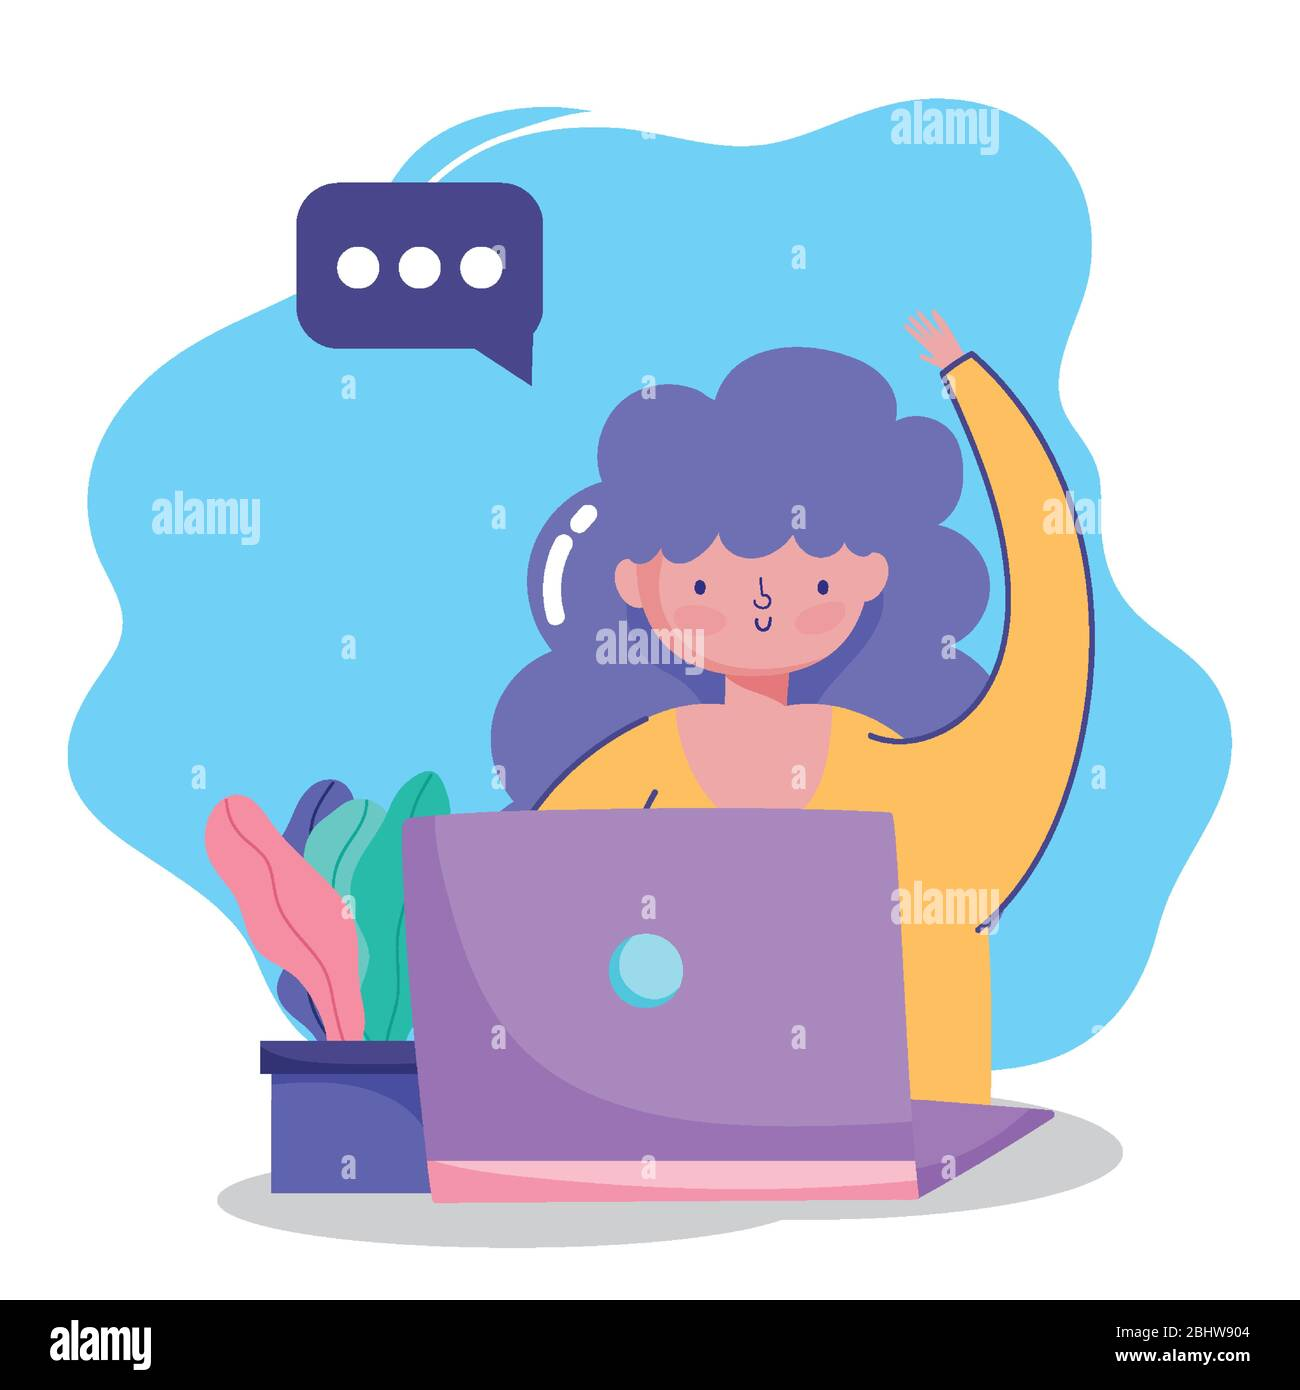 Free Women Meeting Cliparts, Download Free Clip Art, Free Clip Art on  Clipart Library